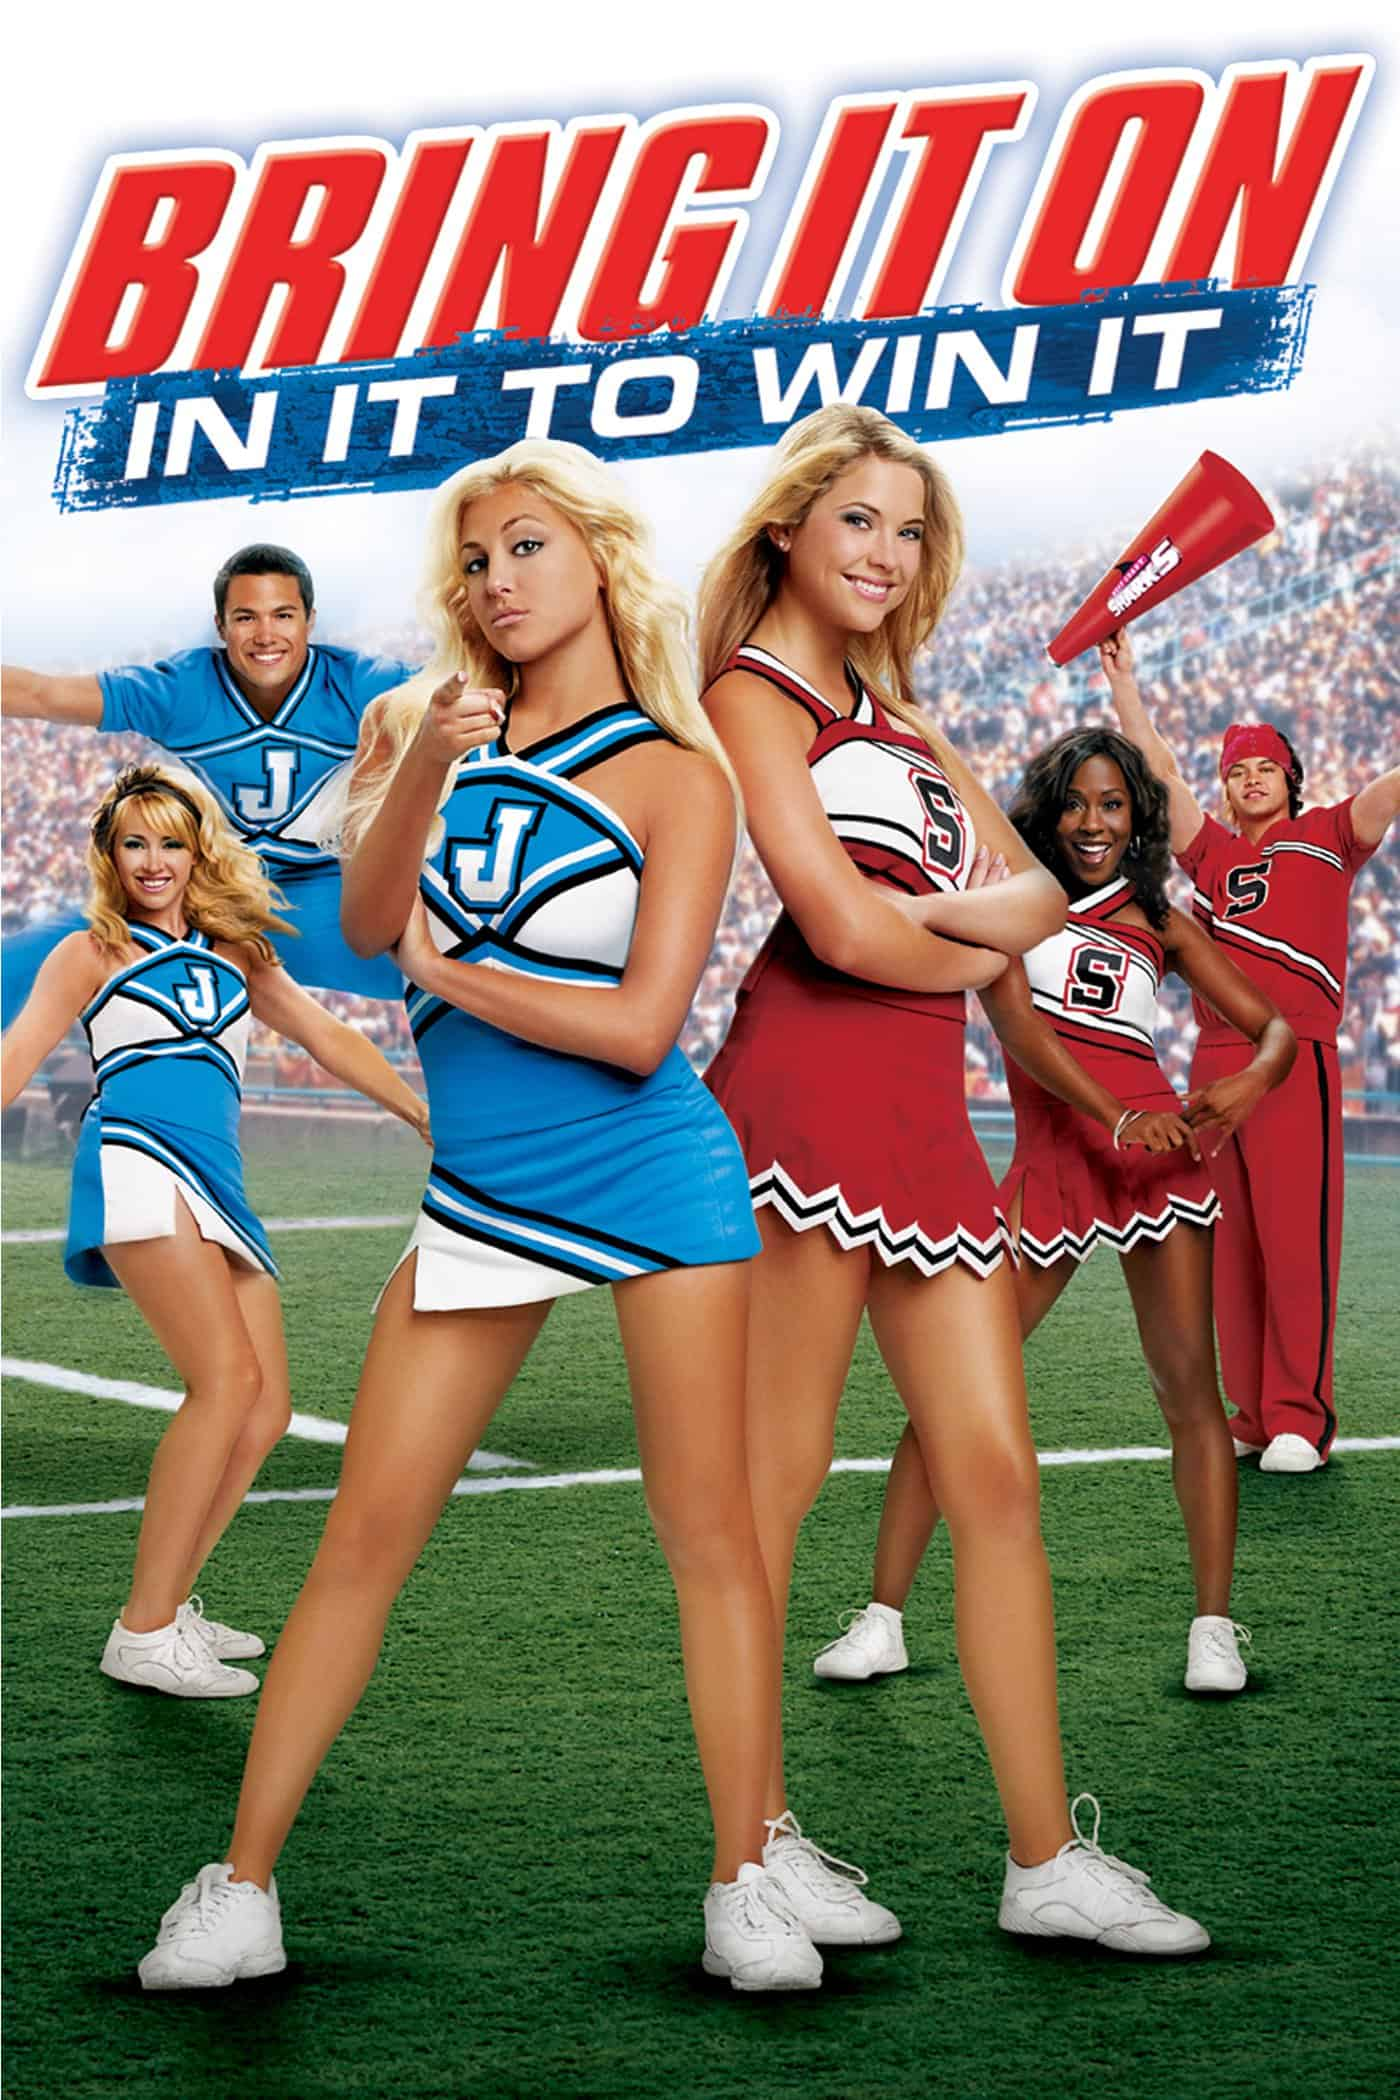 Bring It On: In It to Win It, 2007